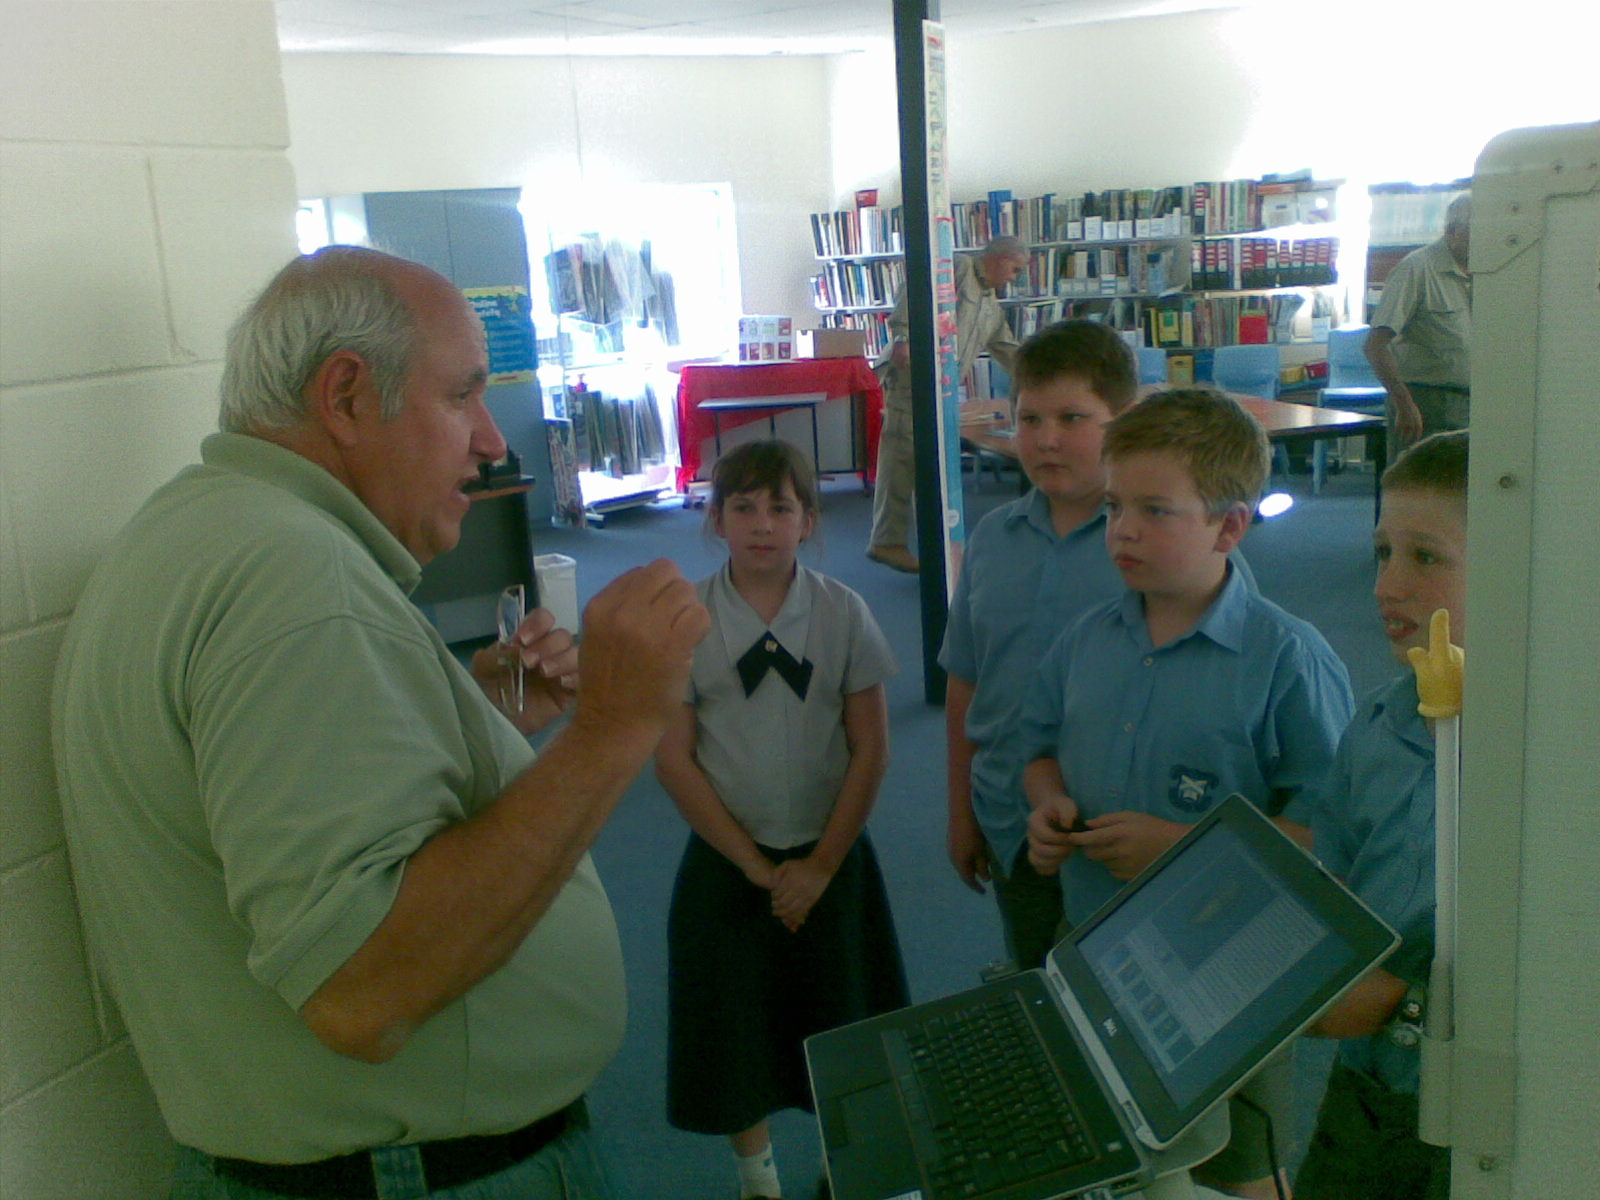 A group of keen astronomers were lucky enough to talk to Thomas Bopp, the co-discoverer of Comet Hale–Bopp, on a recent visit to Australia. Thomas was kind enough to dedicate some of his time to students from BTC.